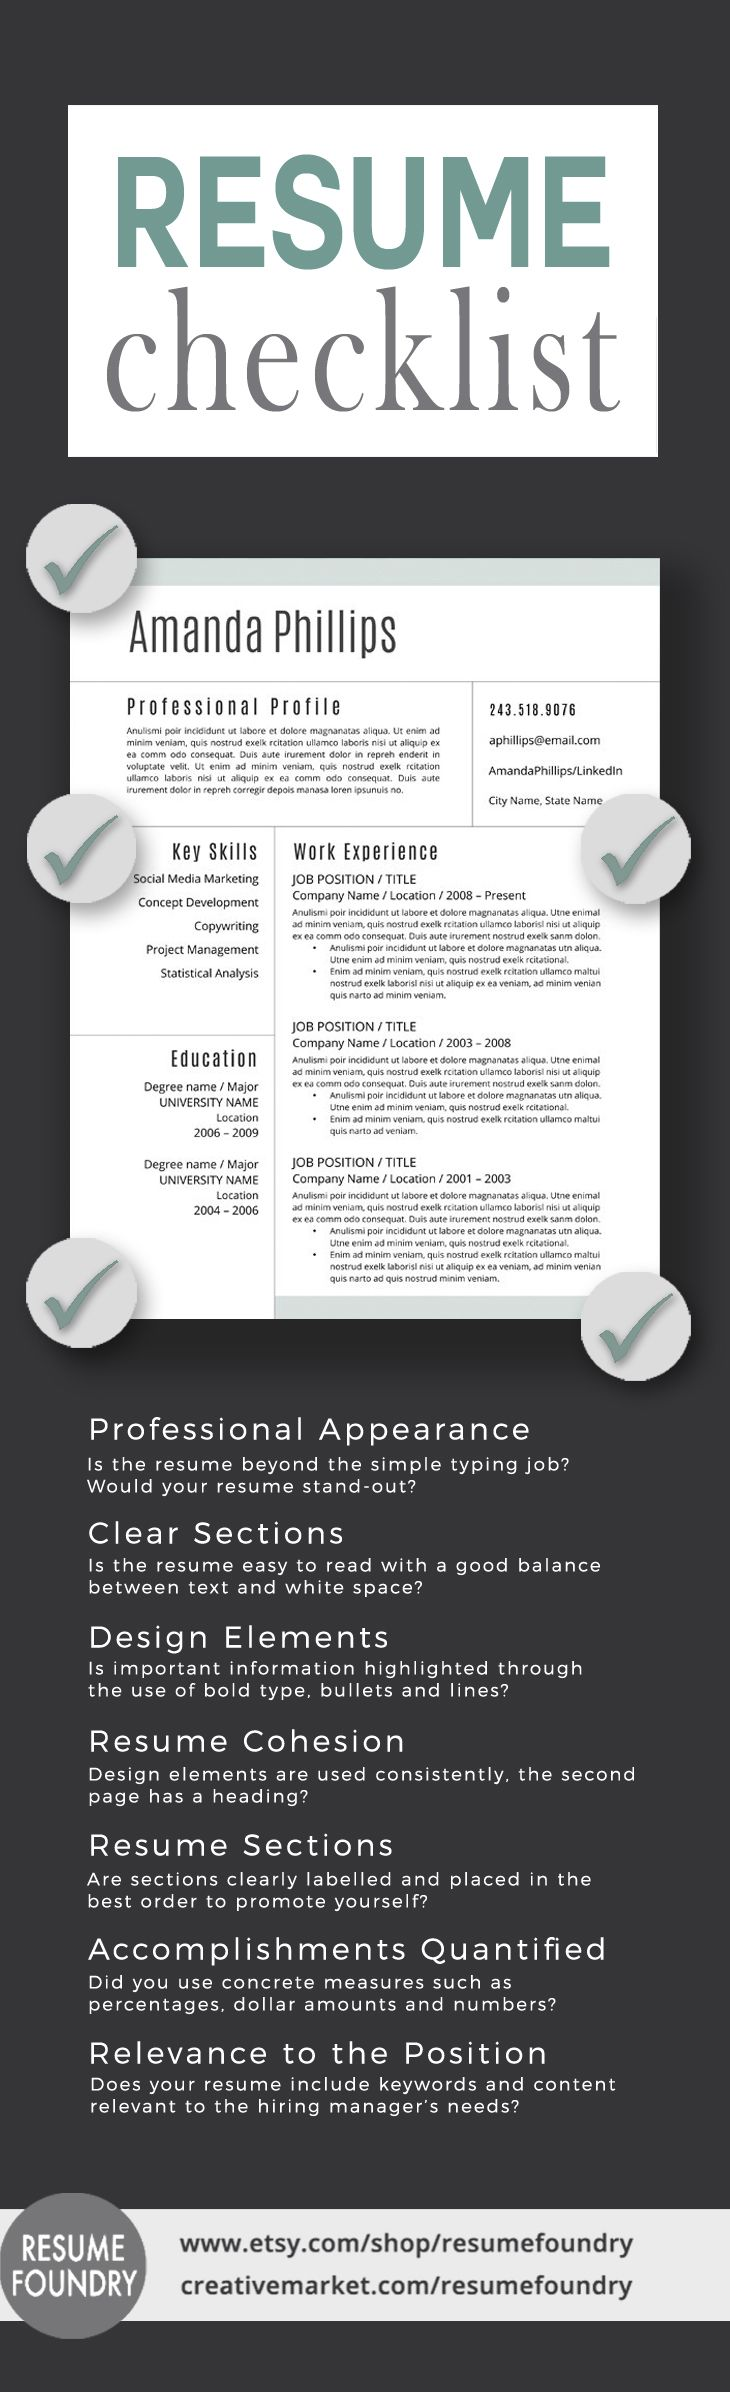 91 best How to fill out a resume images on Pinterest | Resume tips ...